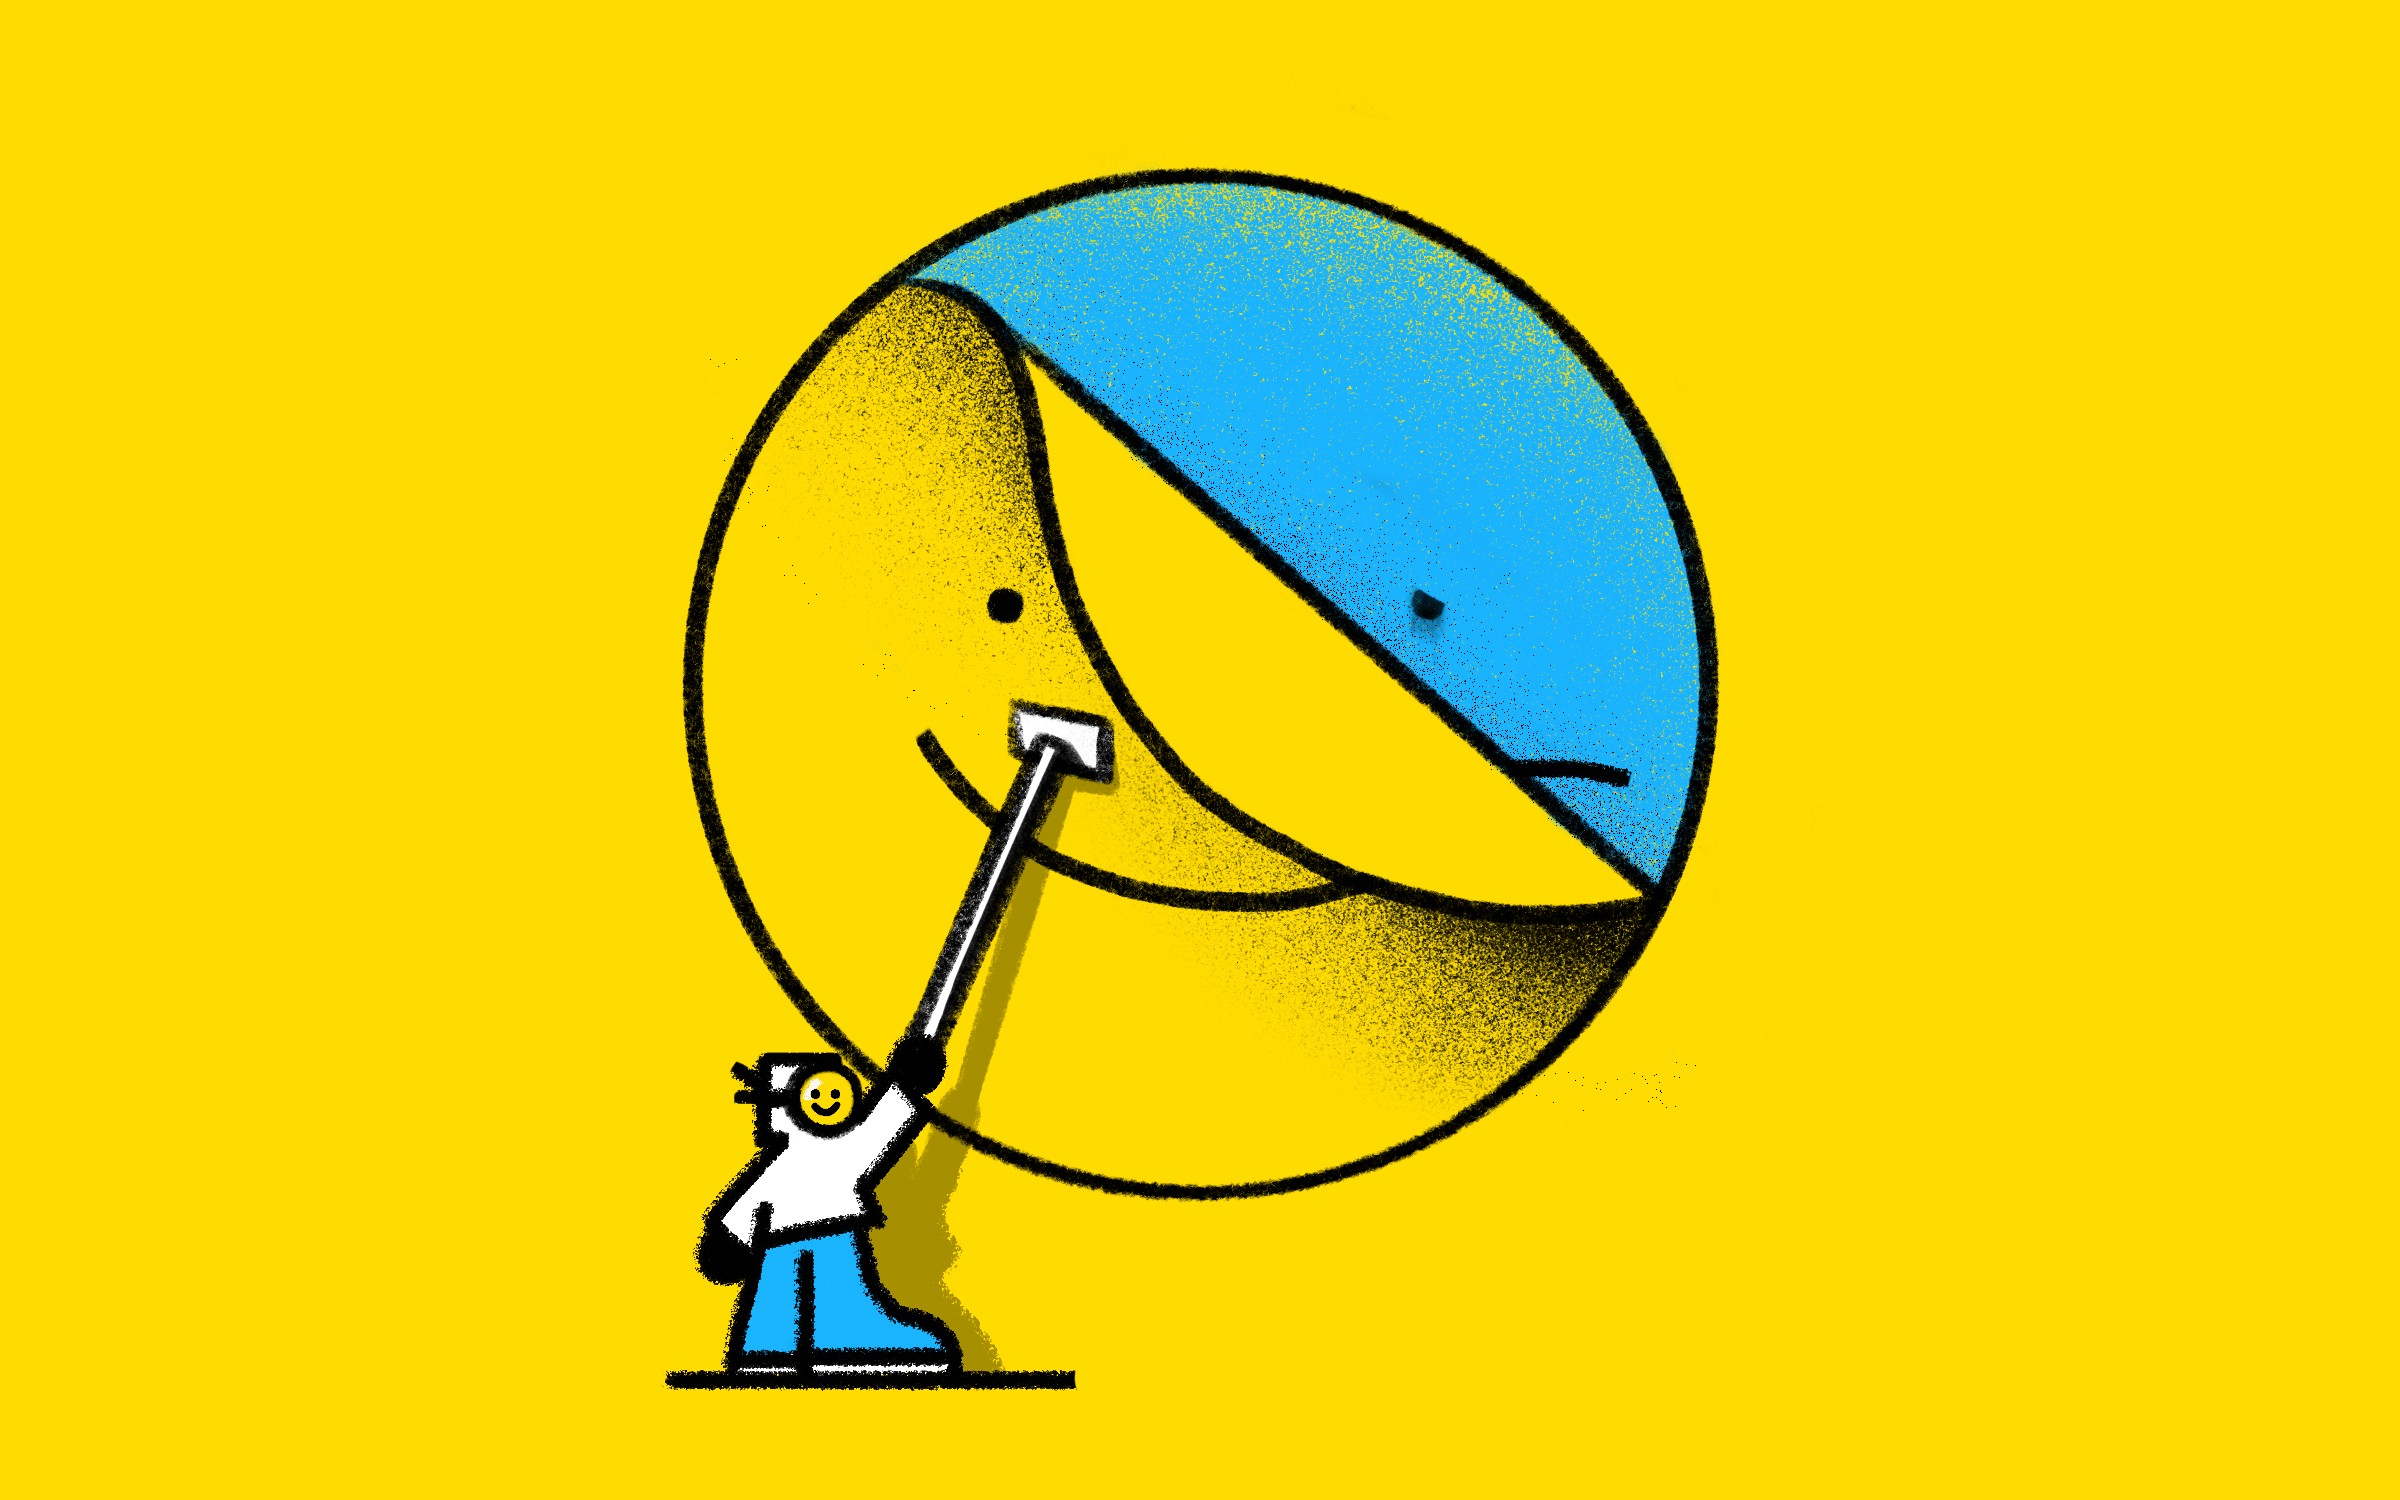 An illustration of a character wall-papering a yellow happy face decal over a blue sad face icon.